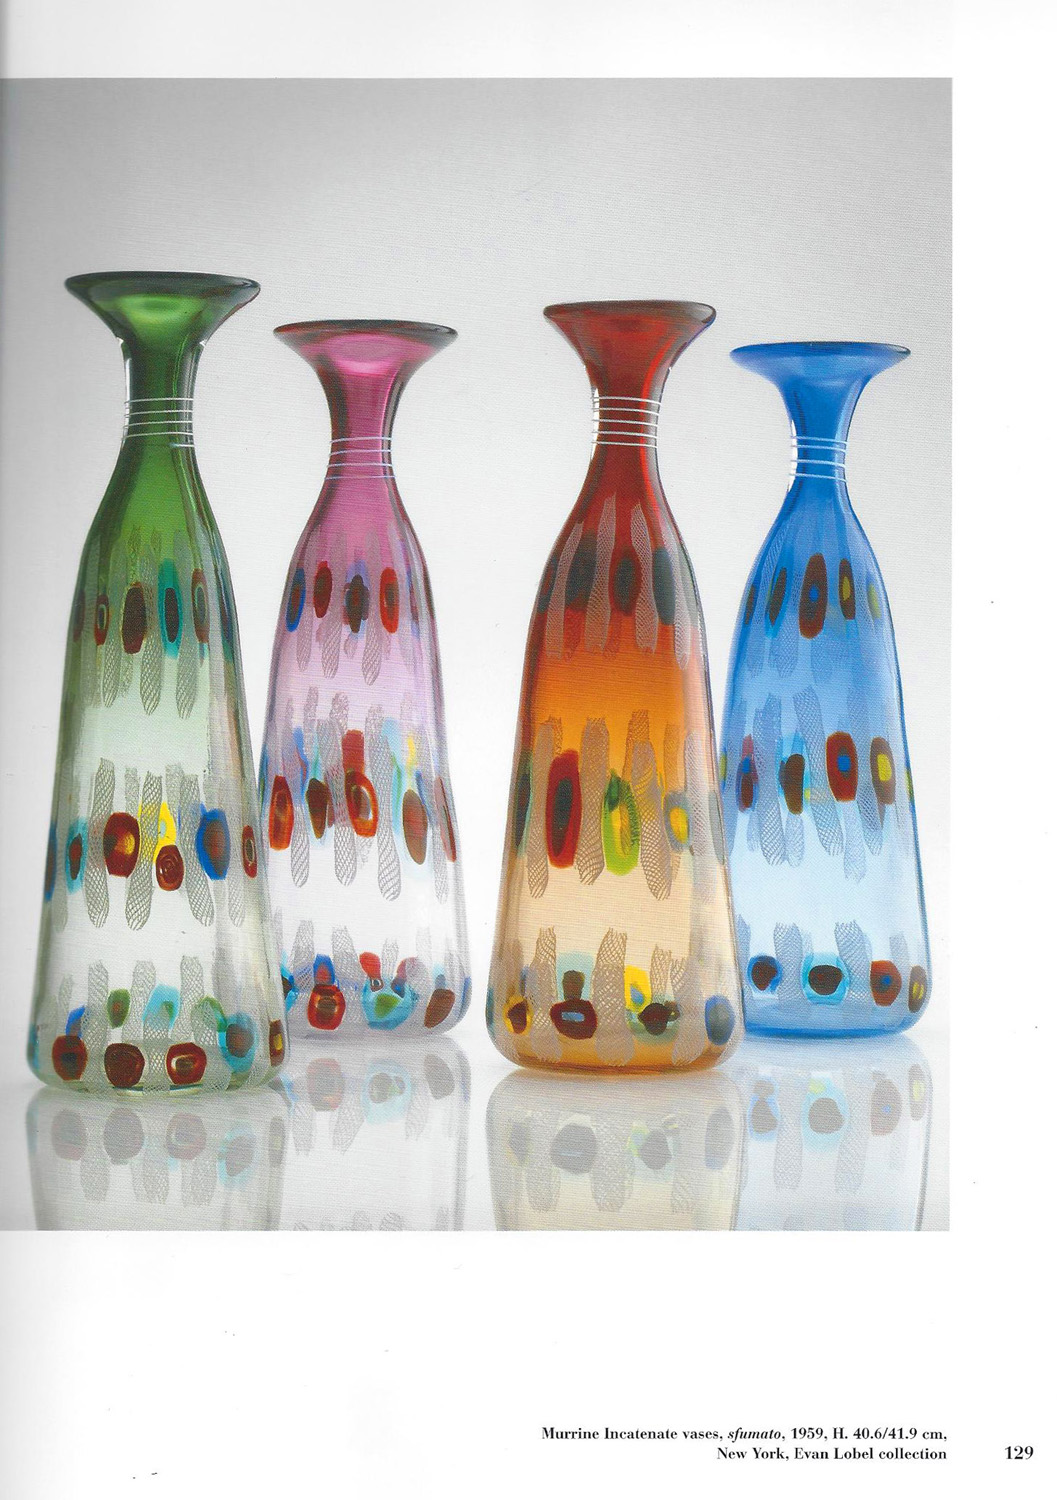 Fuga 85 4 Vases Murrine Incatenate 4x fuga60 detail7 hires.jpg